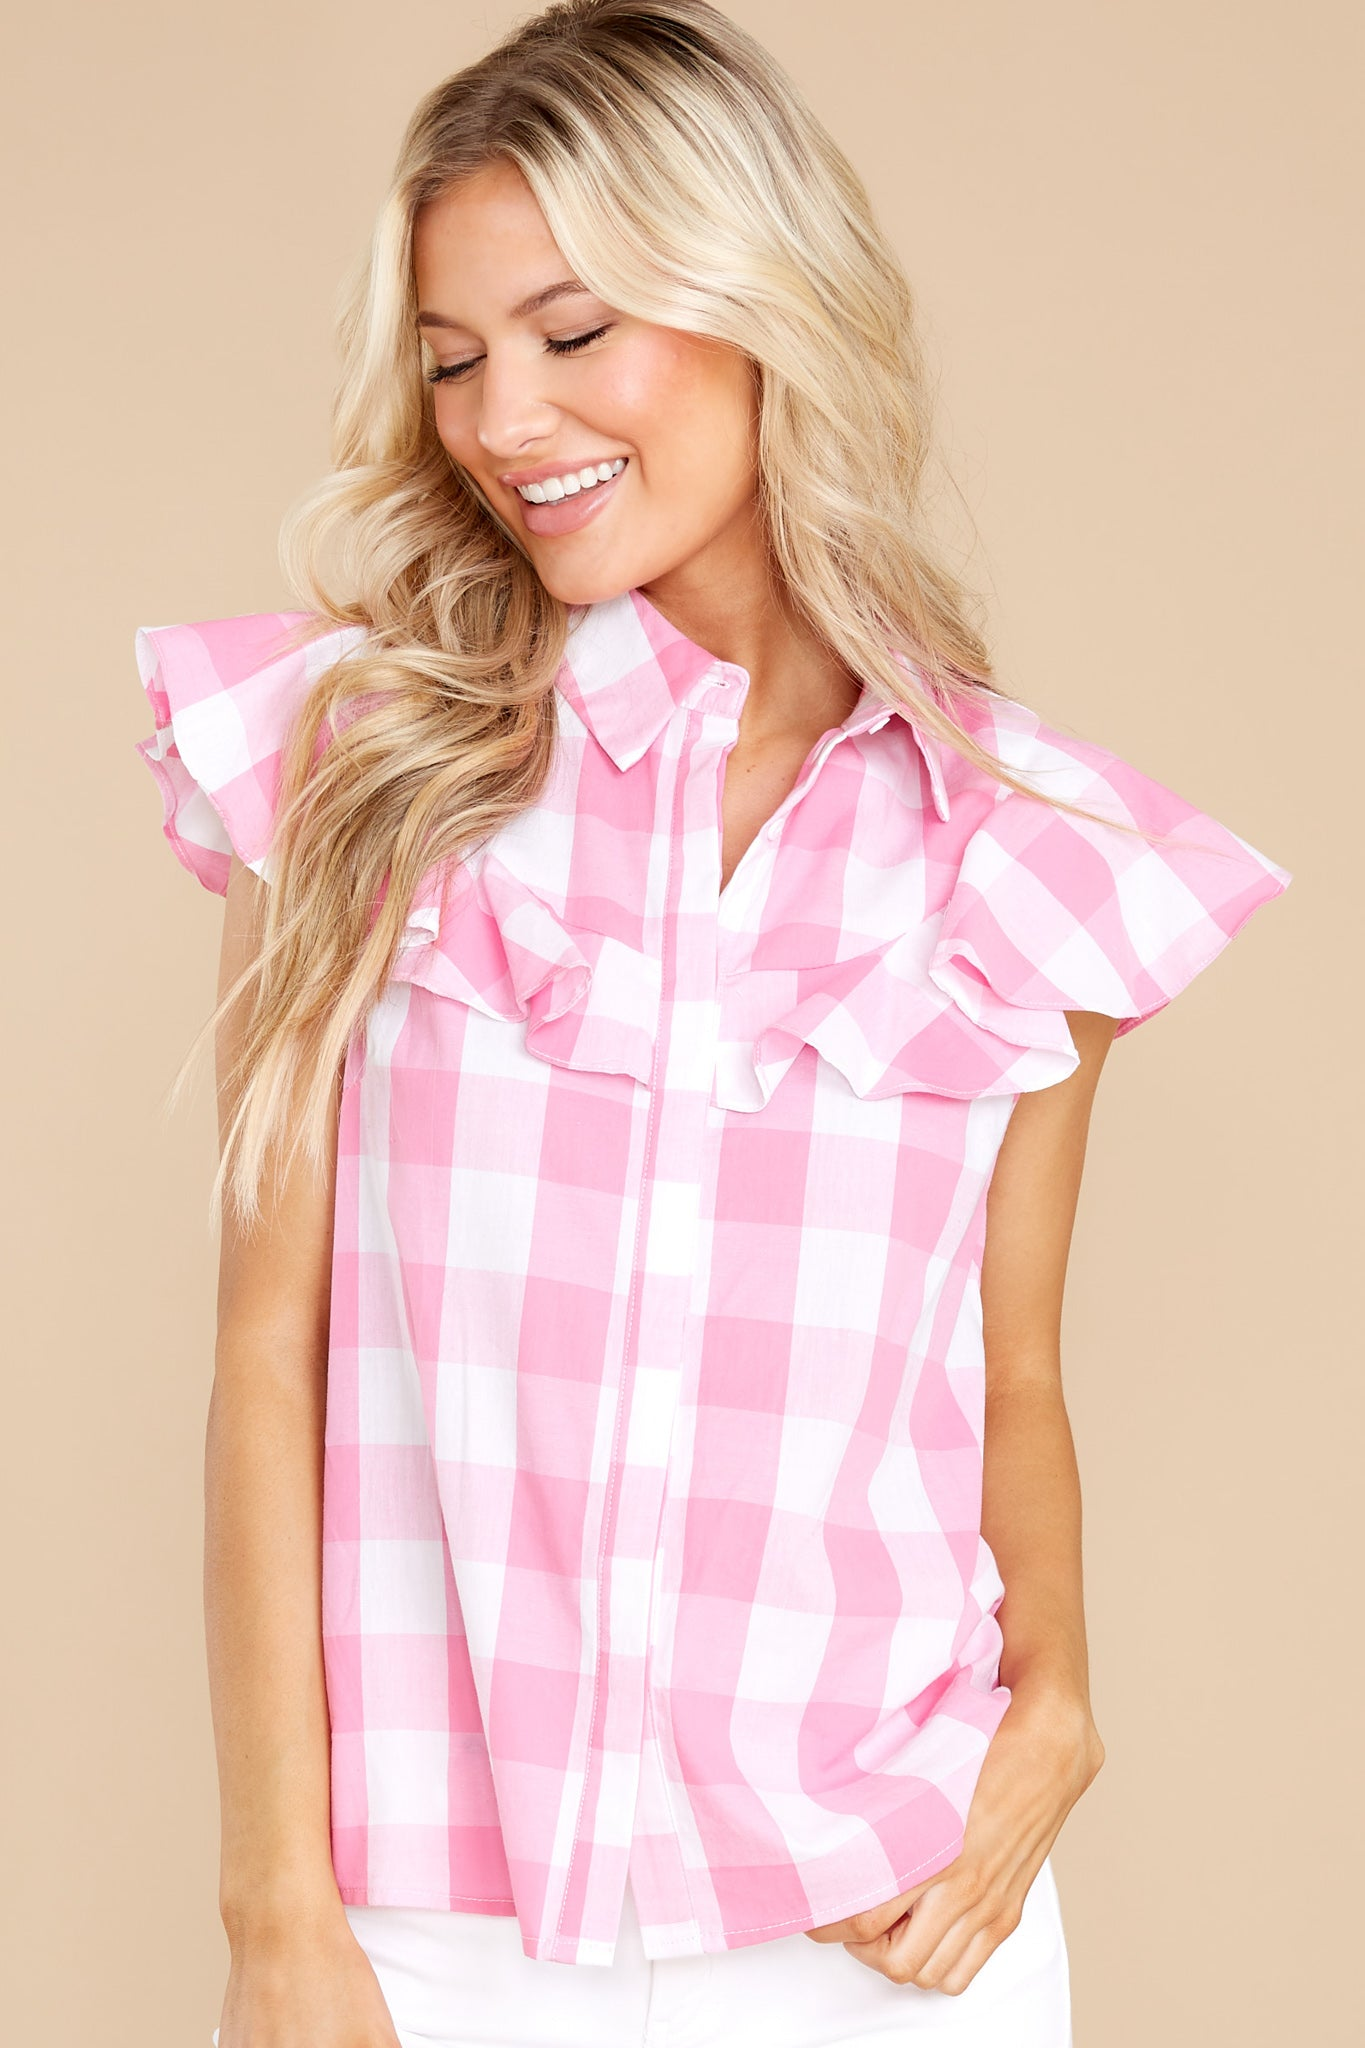 Vintage Western Wear Clothing, Outfit Ideas Aura See You Later Pink Gingham Button Up Top $38.00 AT vintagedancer.com